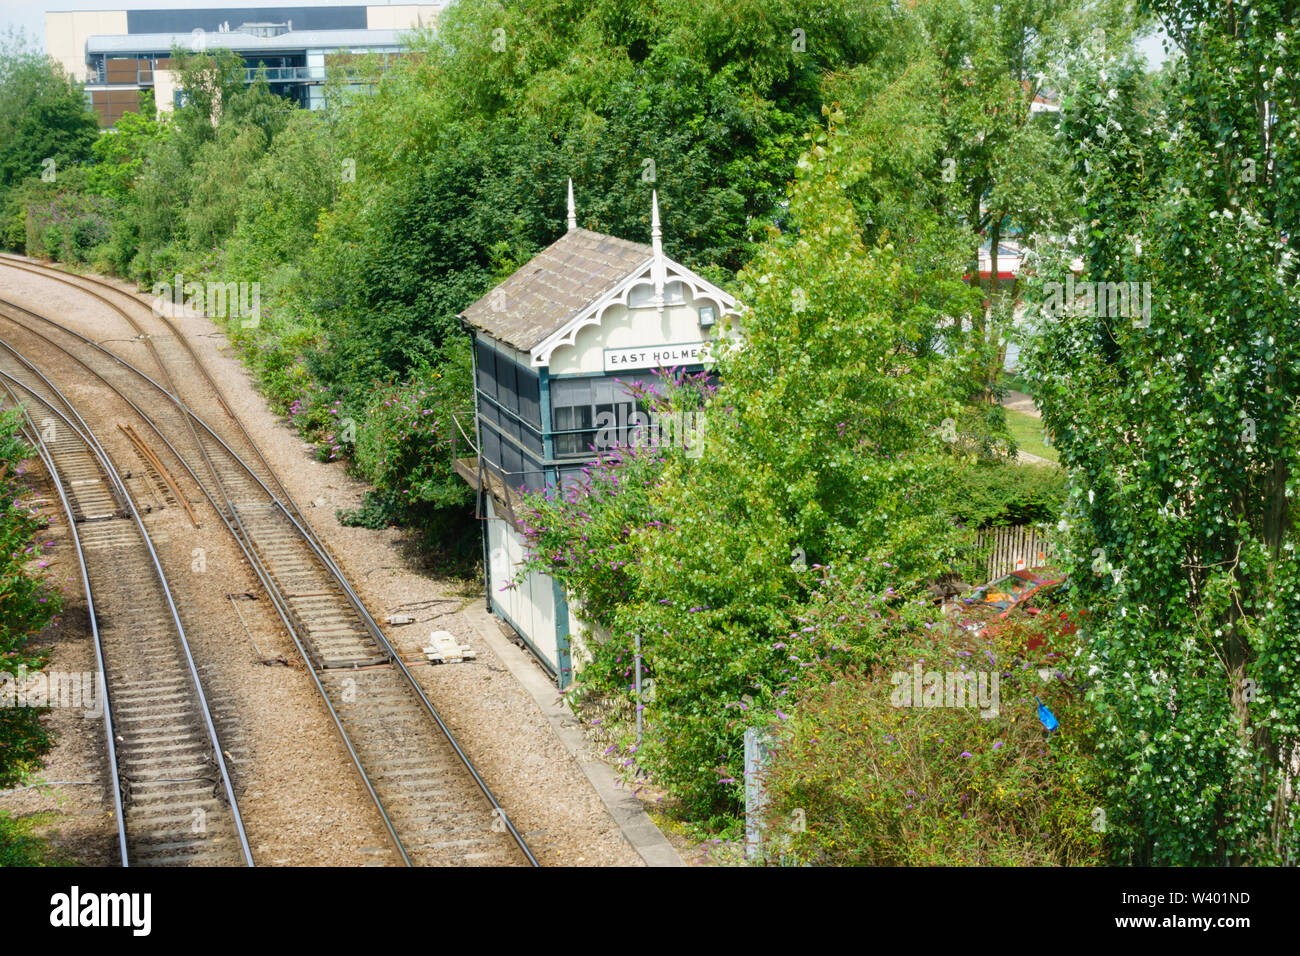 Dis-used East Holmes Signal Box, Lincoln, Lincolnshire, England. July 2019 Stock Photo